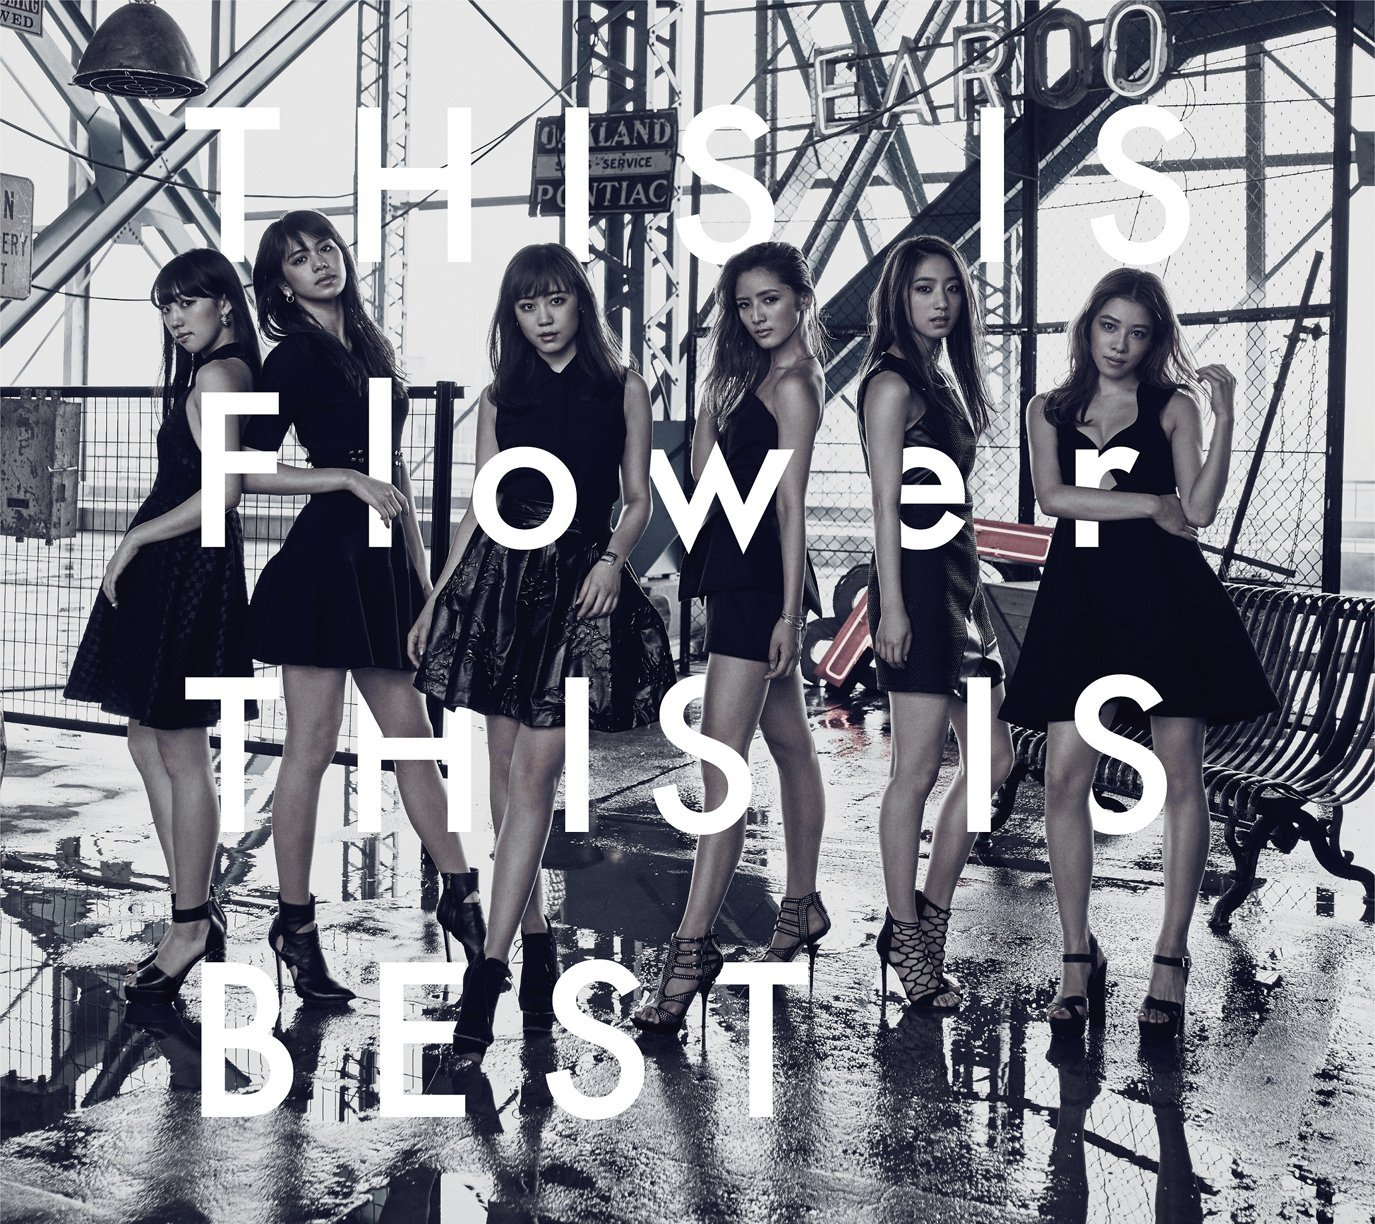 20161002.01.03 Flower - THIS IS Flower THIS IS BEST (DVD) cover.jpg